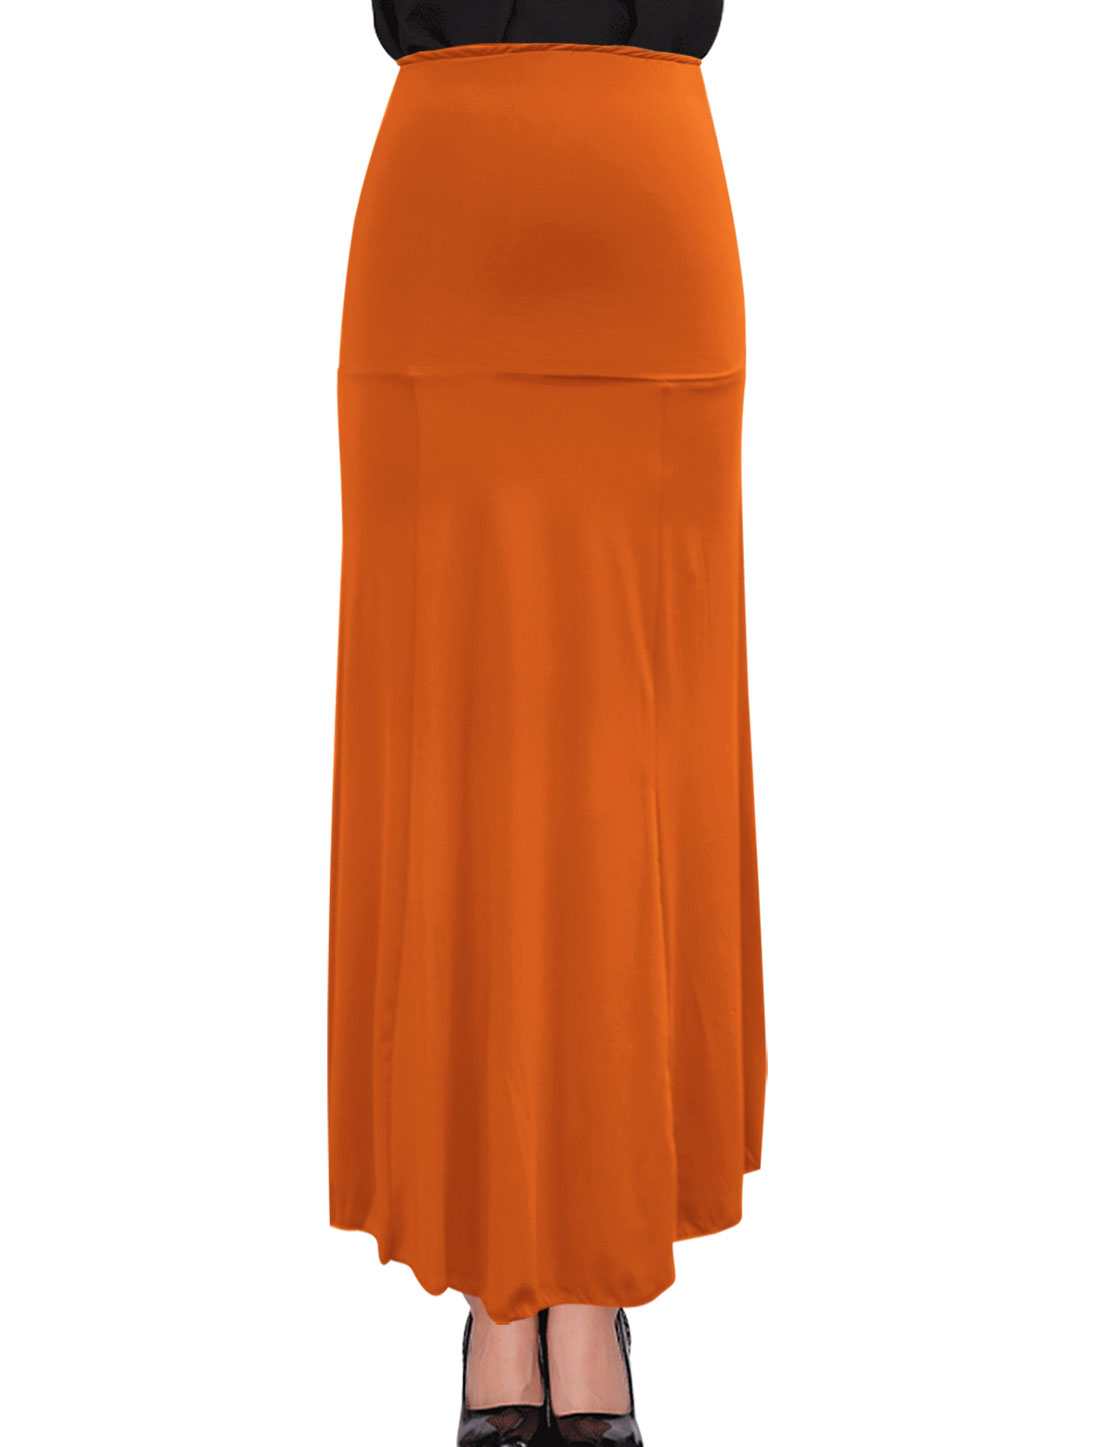 New Style Stretchy Maxi Design Orange Beach Skirt for Ladies M